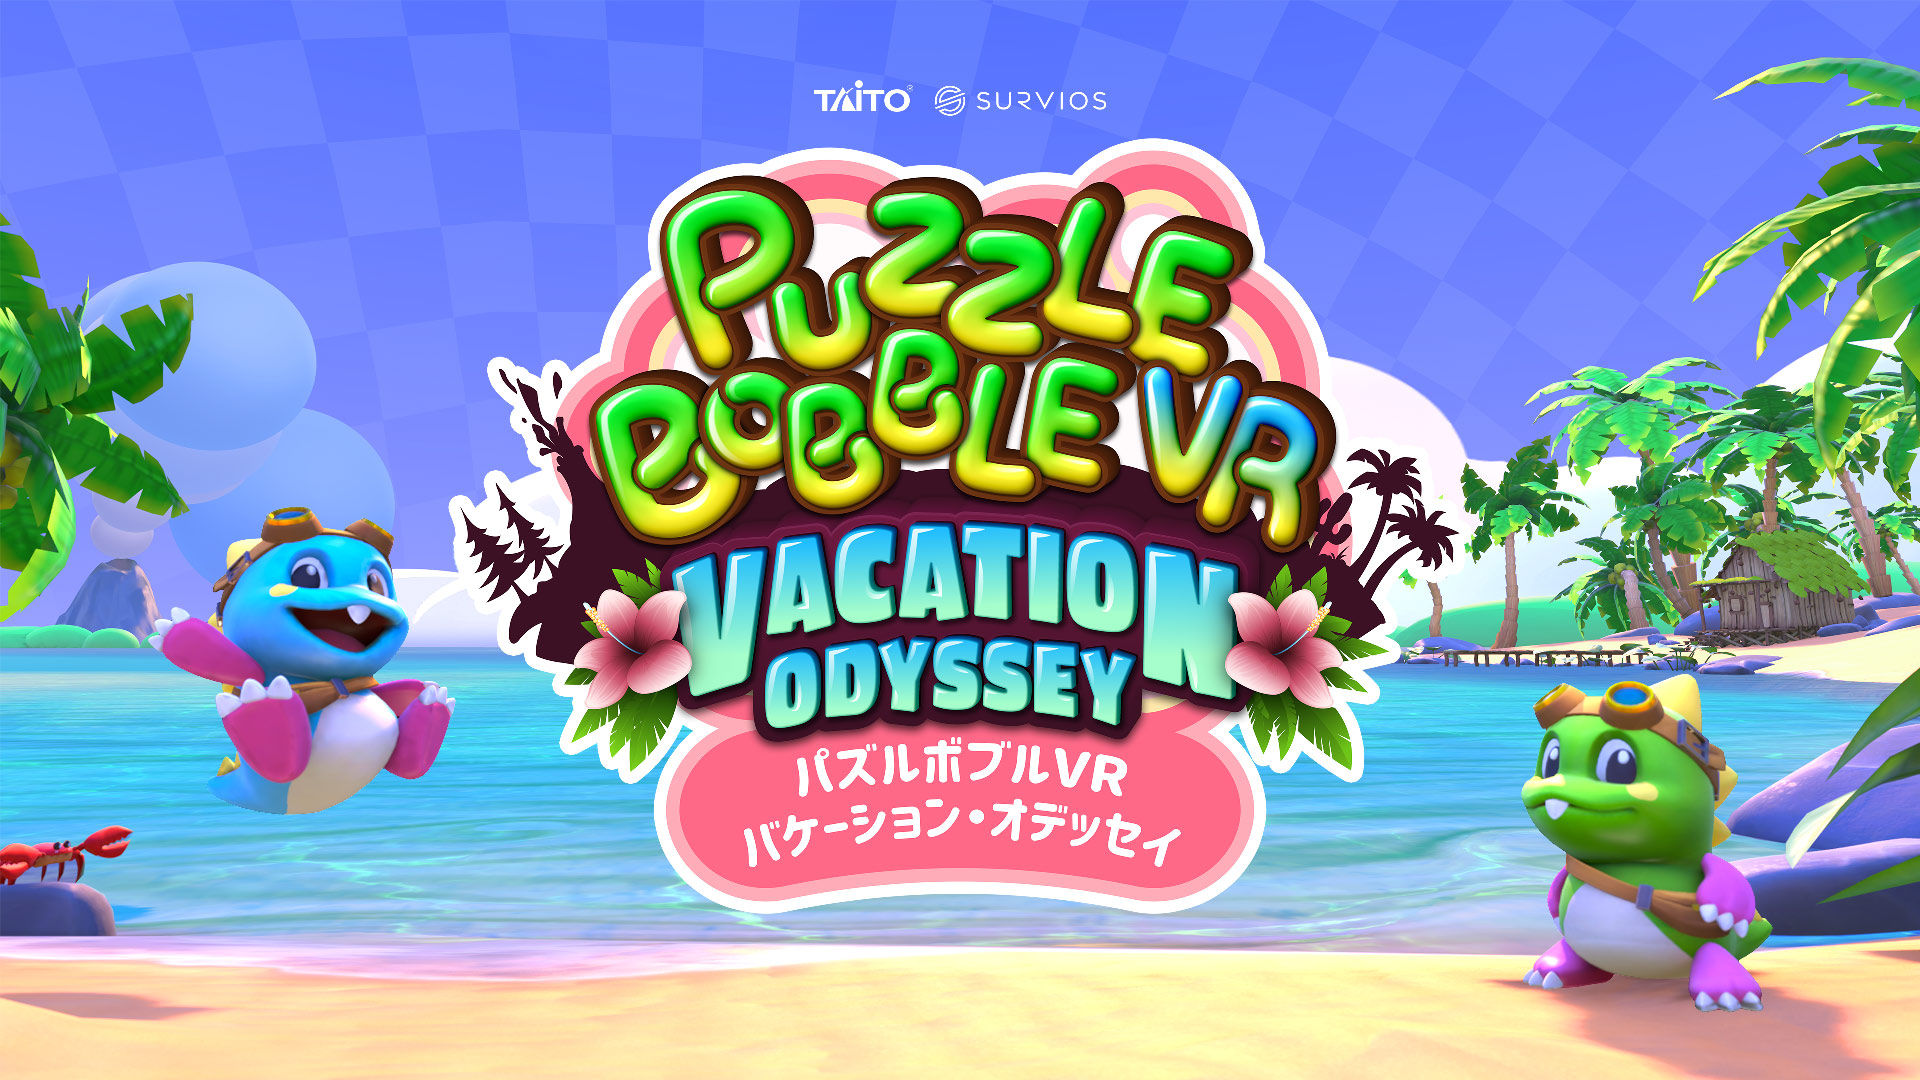 《Puzzle Bobble VR: Vacation Odyssey》(泡泡龙VR:假日奥德赛)